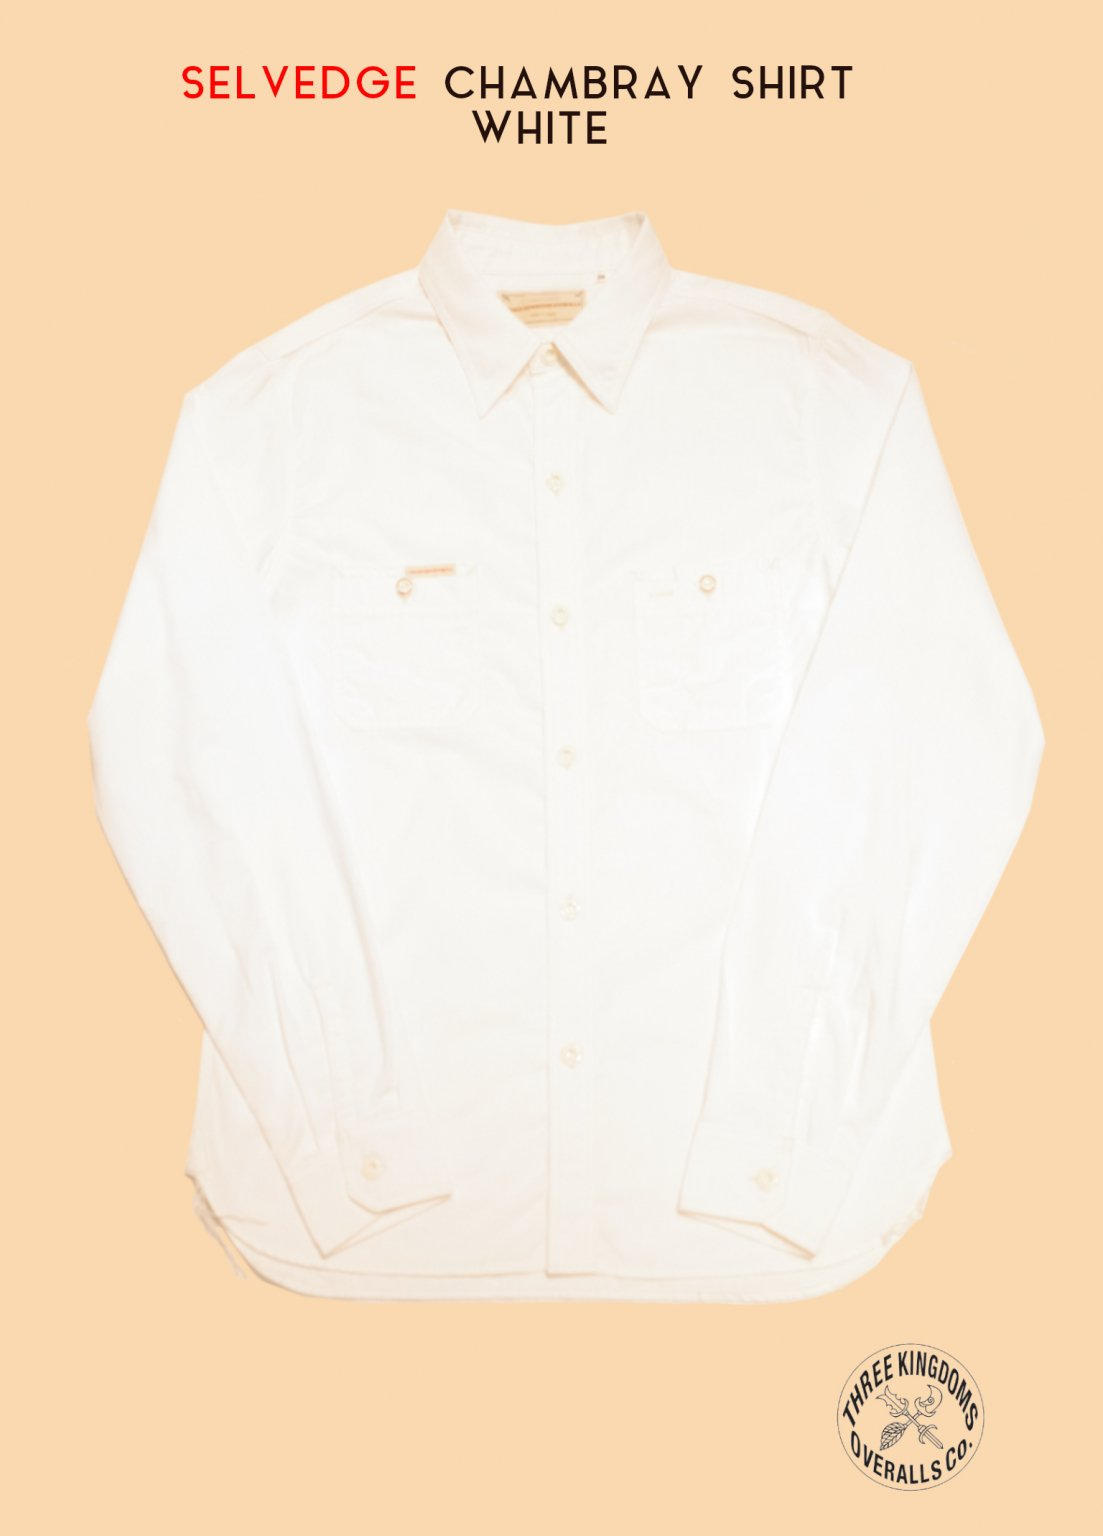 CB01Sw CHAMBRAY SHIRT (WHITE)<img class='new_mark_img2' src='https://img.shop-pro.jp/img/new/icons14.gif' style='border:none;display:inline;margin:0px;padding:0px;width:auto;' />